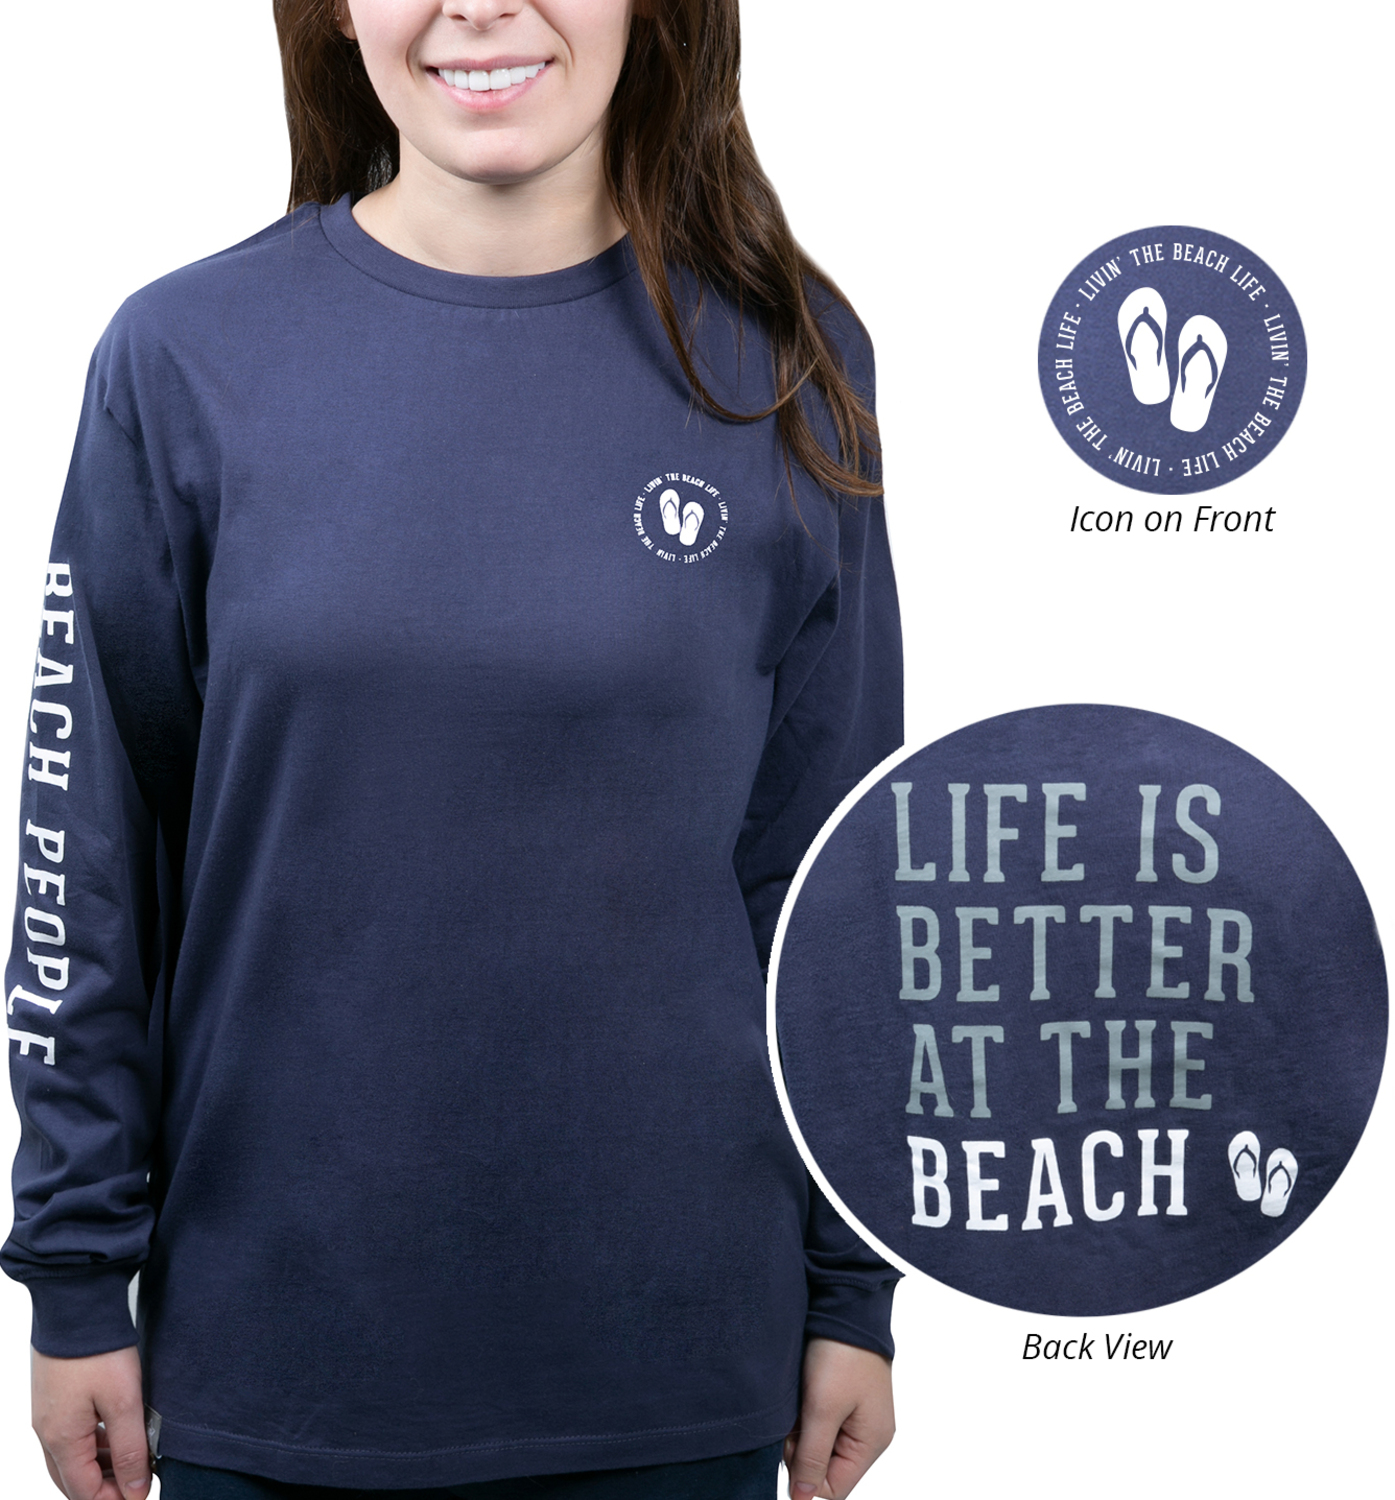 Beach People by We People - Beach People - Small Navy Unisex Long Sleeve T-Shirt